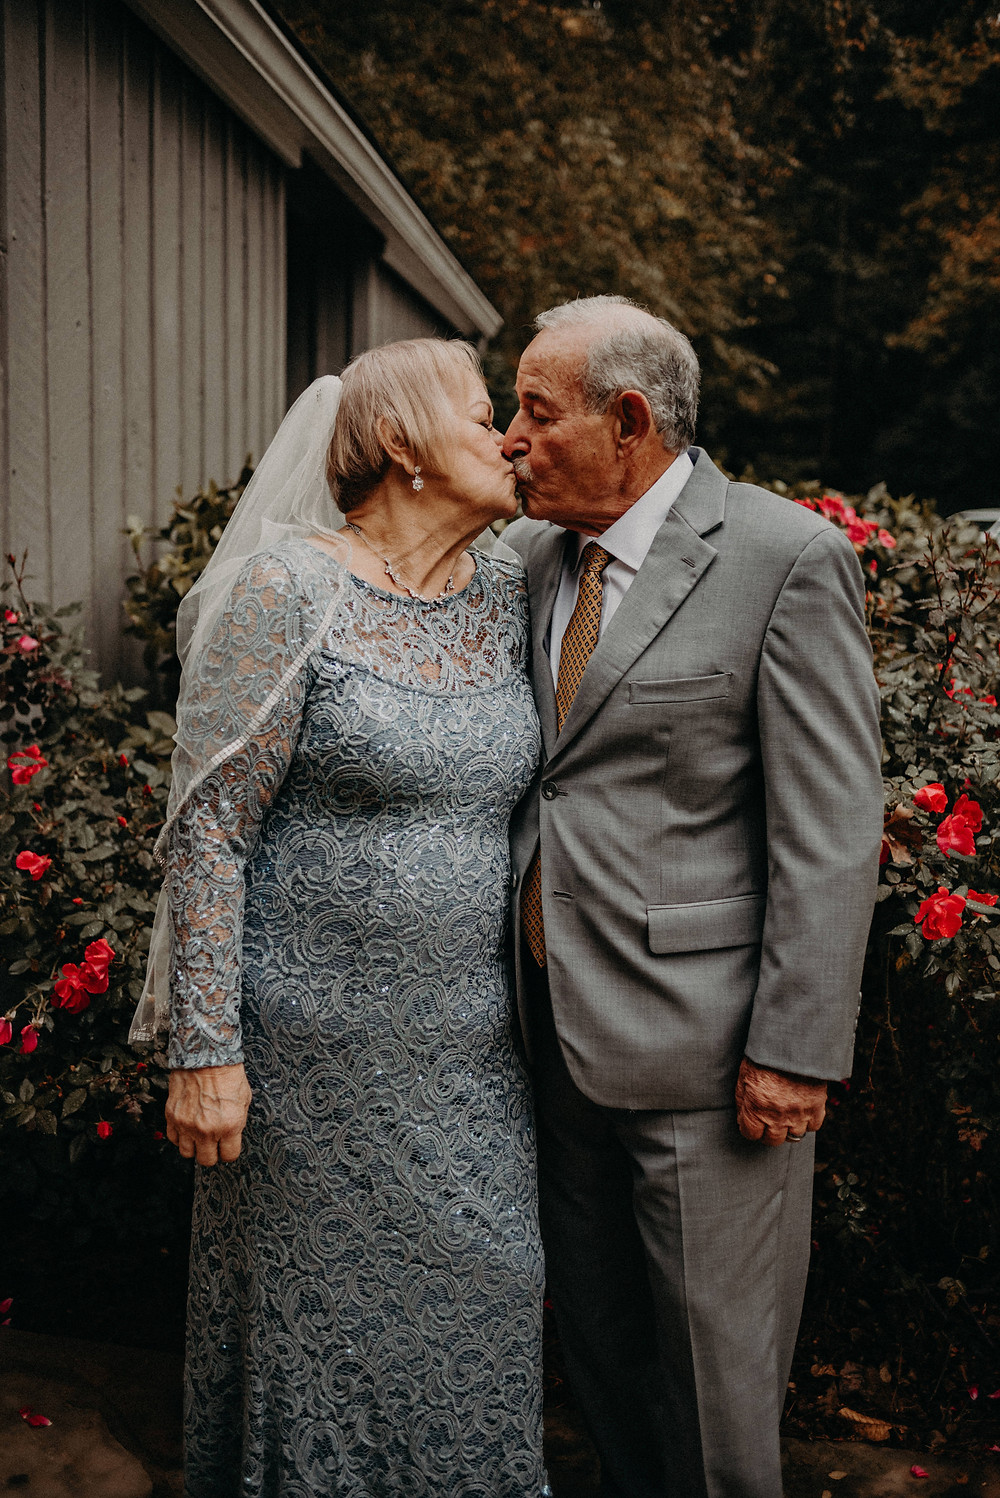 Elderly couple kissing at their wedding